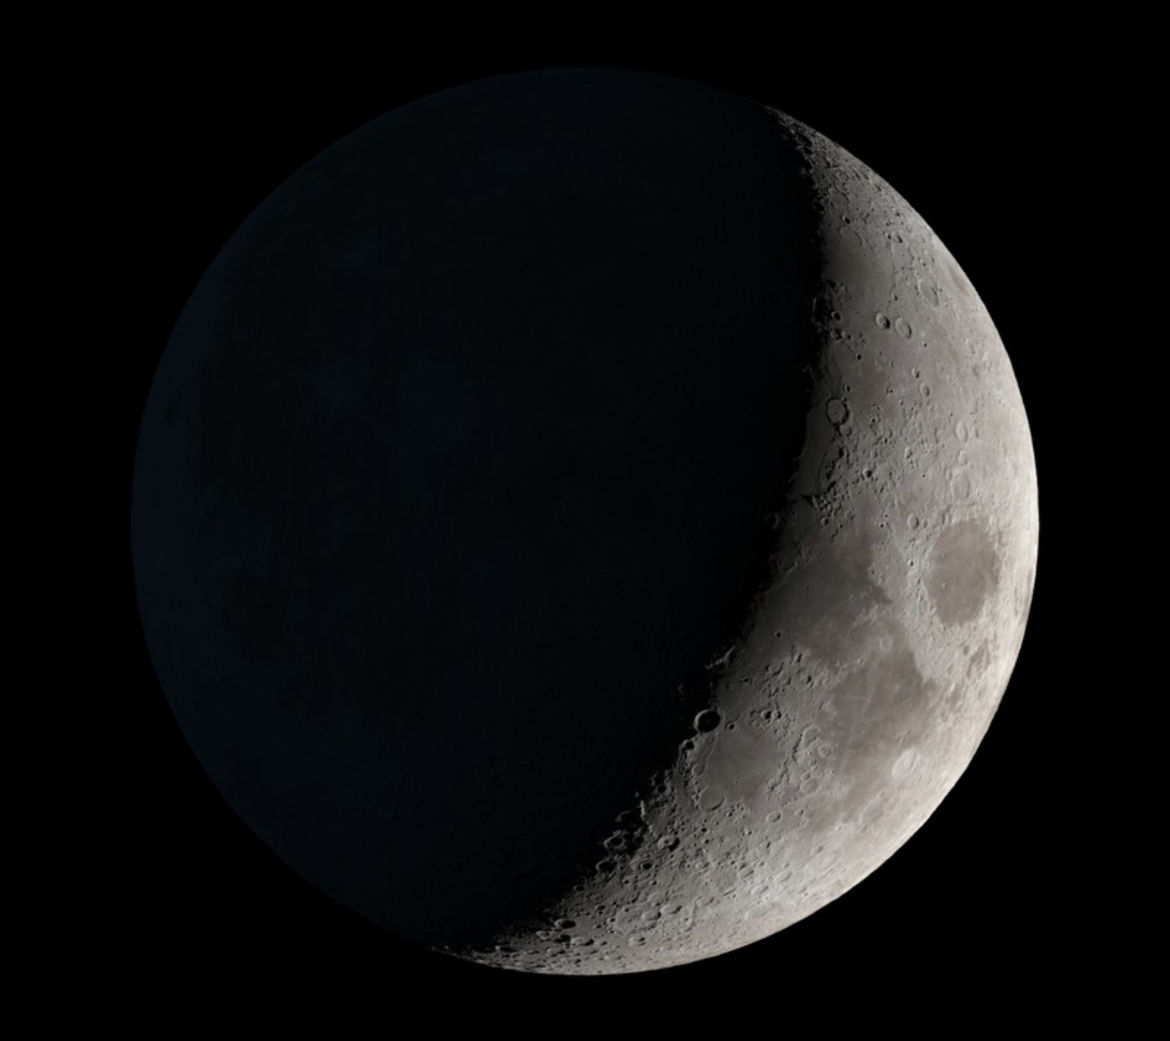 The Moon will be a waxing crescent, 30% full, just before midnight, Dec. 31, 2019. Credit: NASA's Scientific Visualization Studio